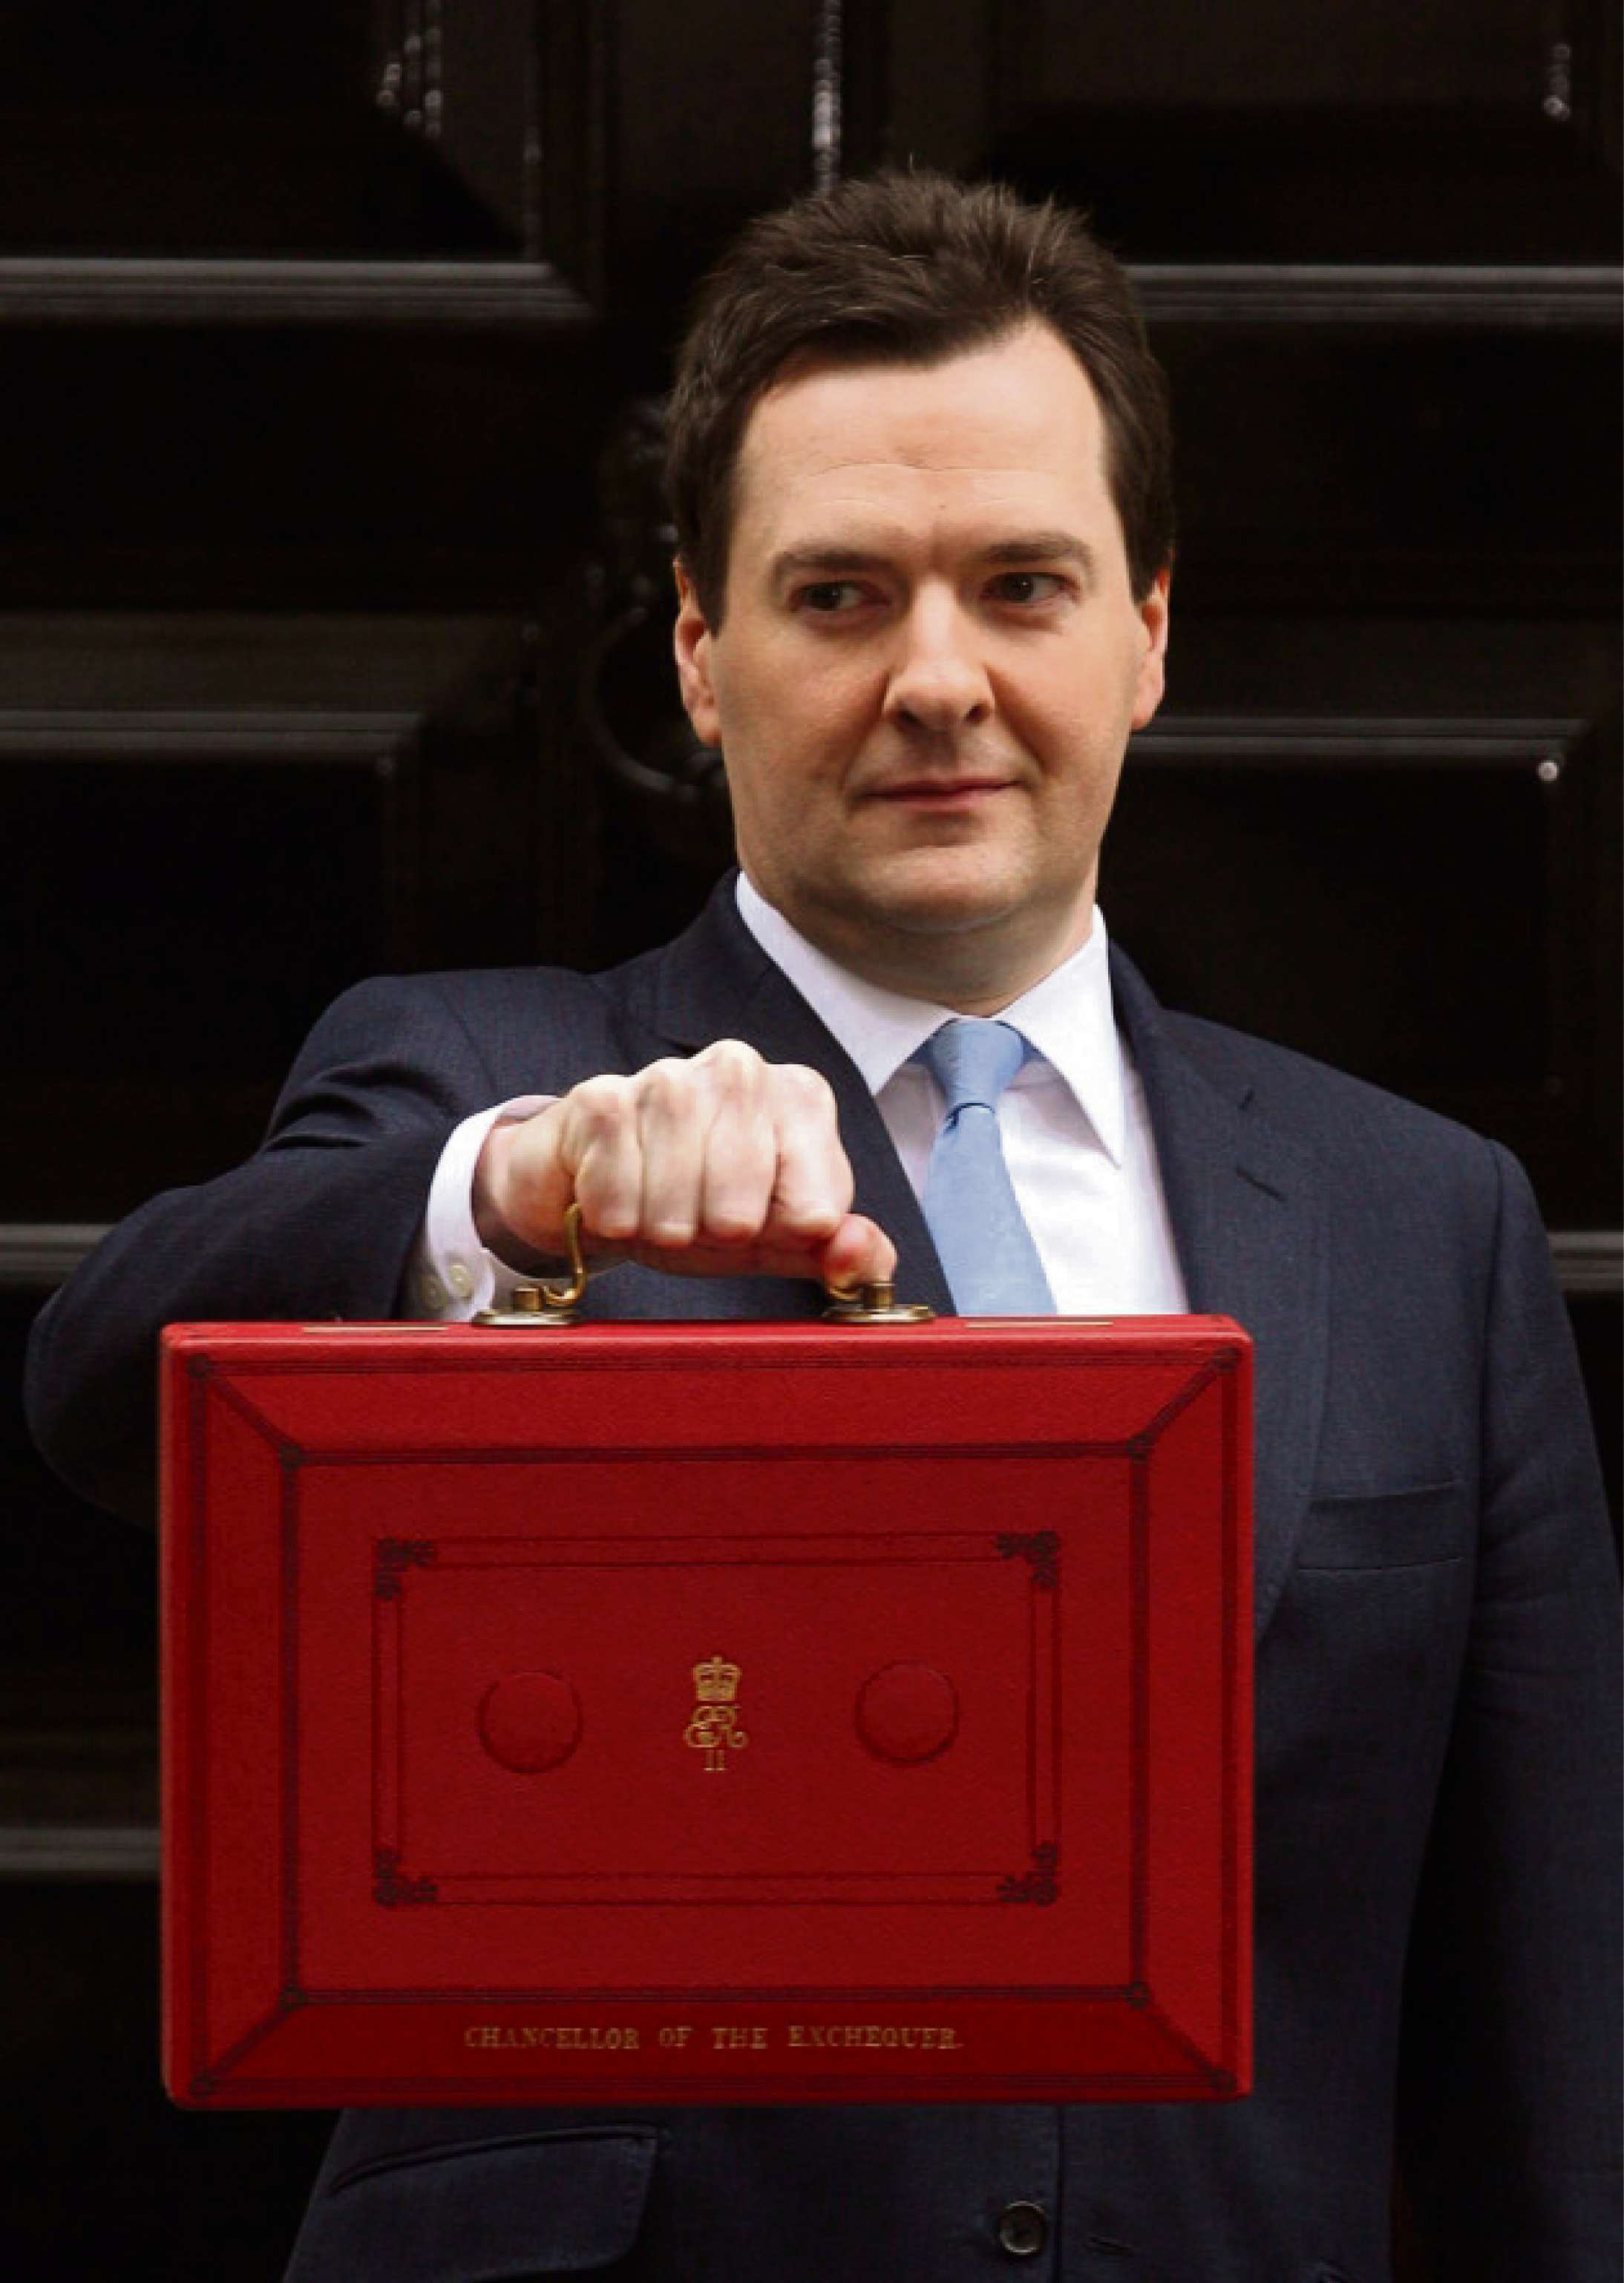 So who were the big winners in today's Budget?